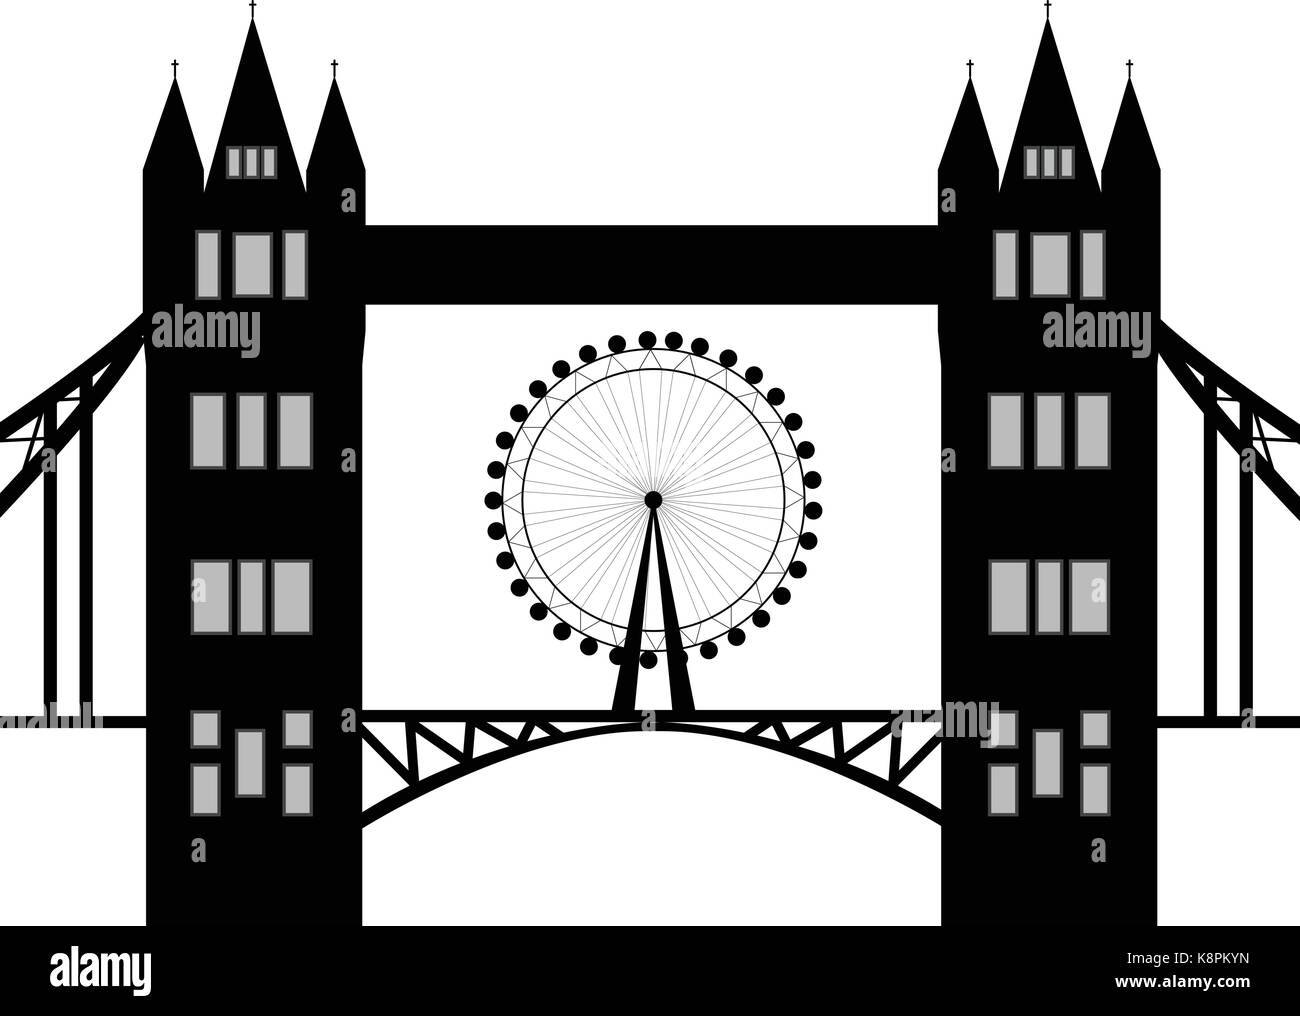 Image of cartoon Tower bridge and london eye  silhouette. Vector illustration isolated on white background. - Stock Vector